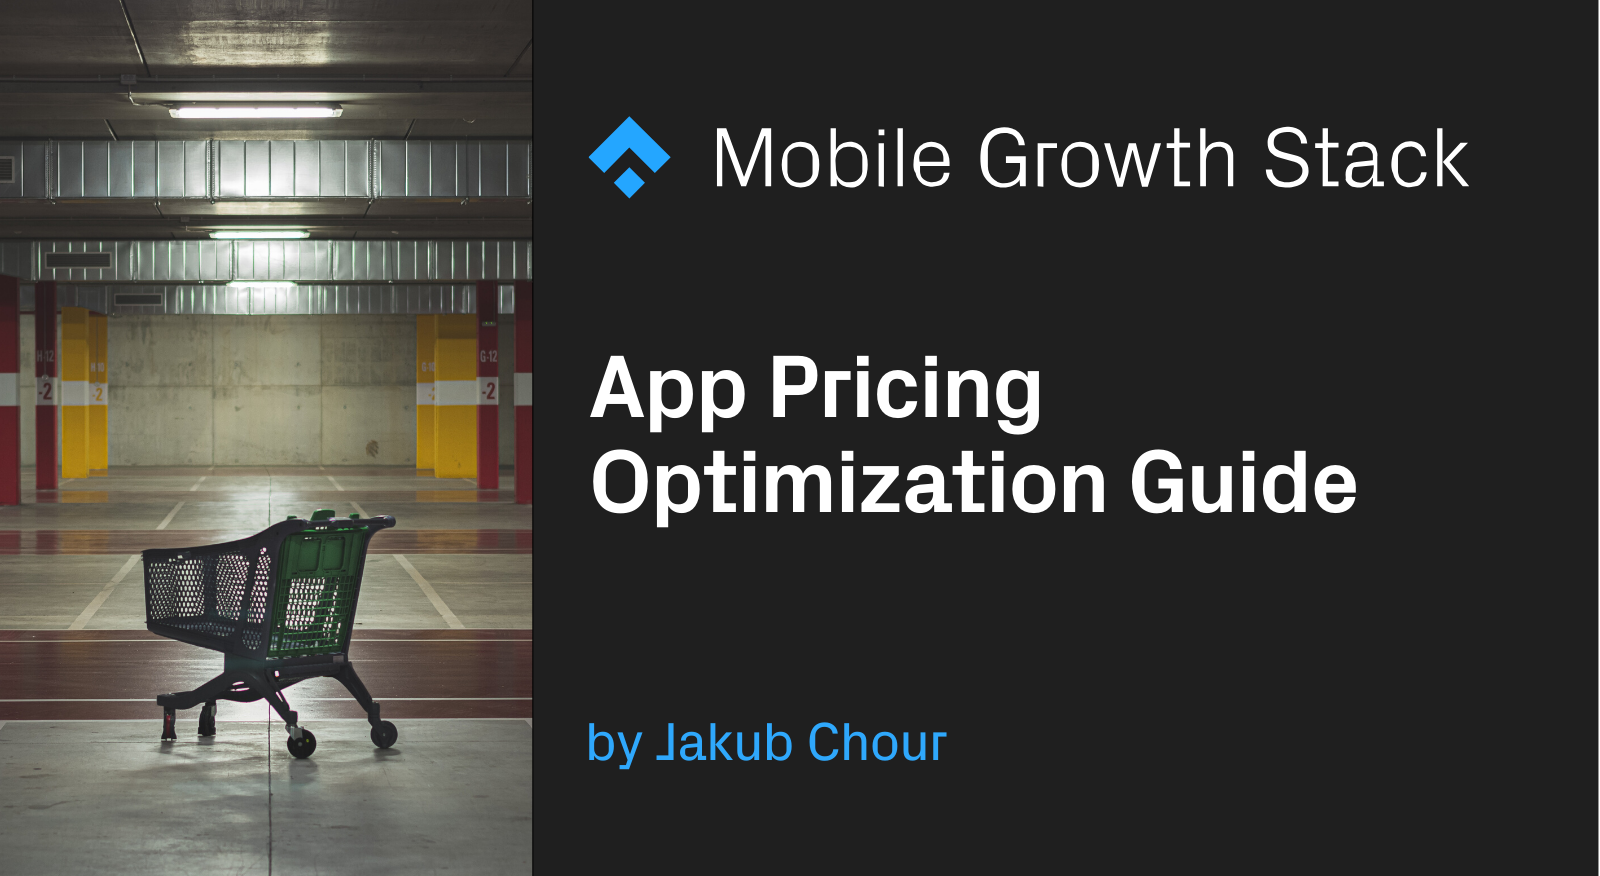 app pricing optimization guide